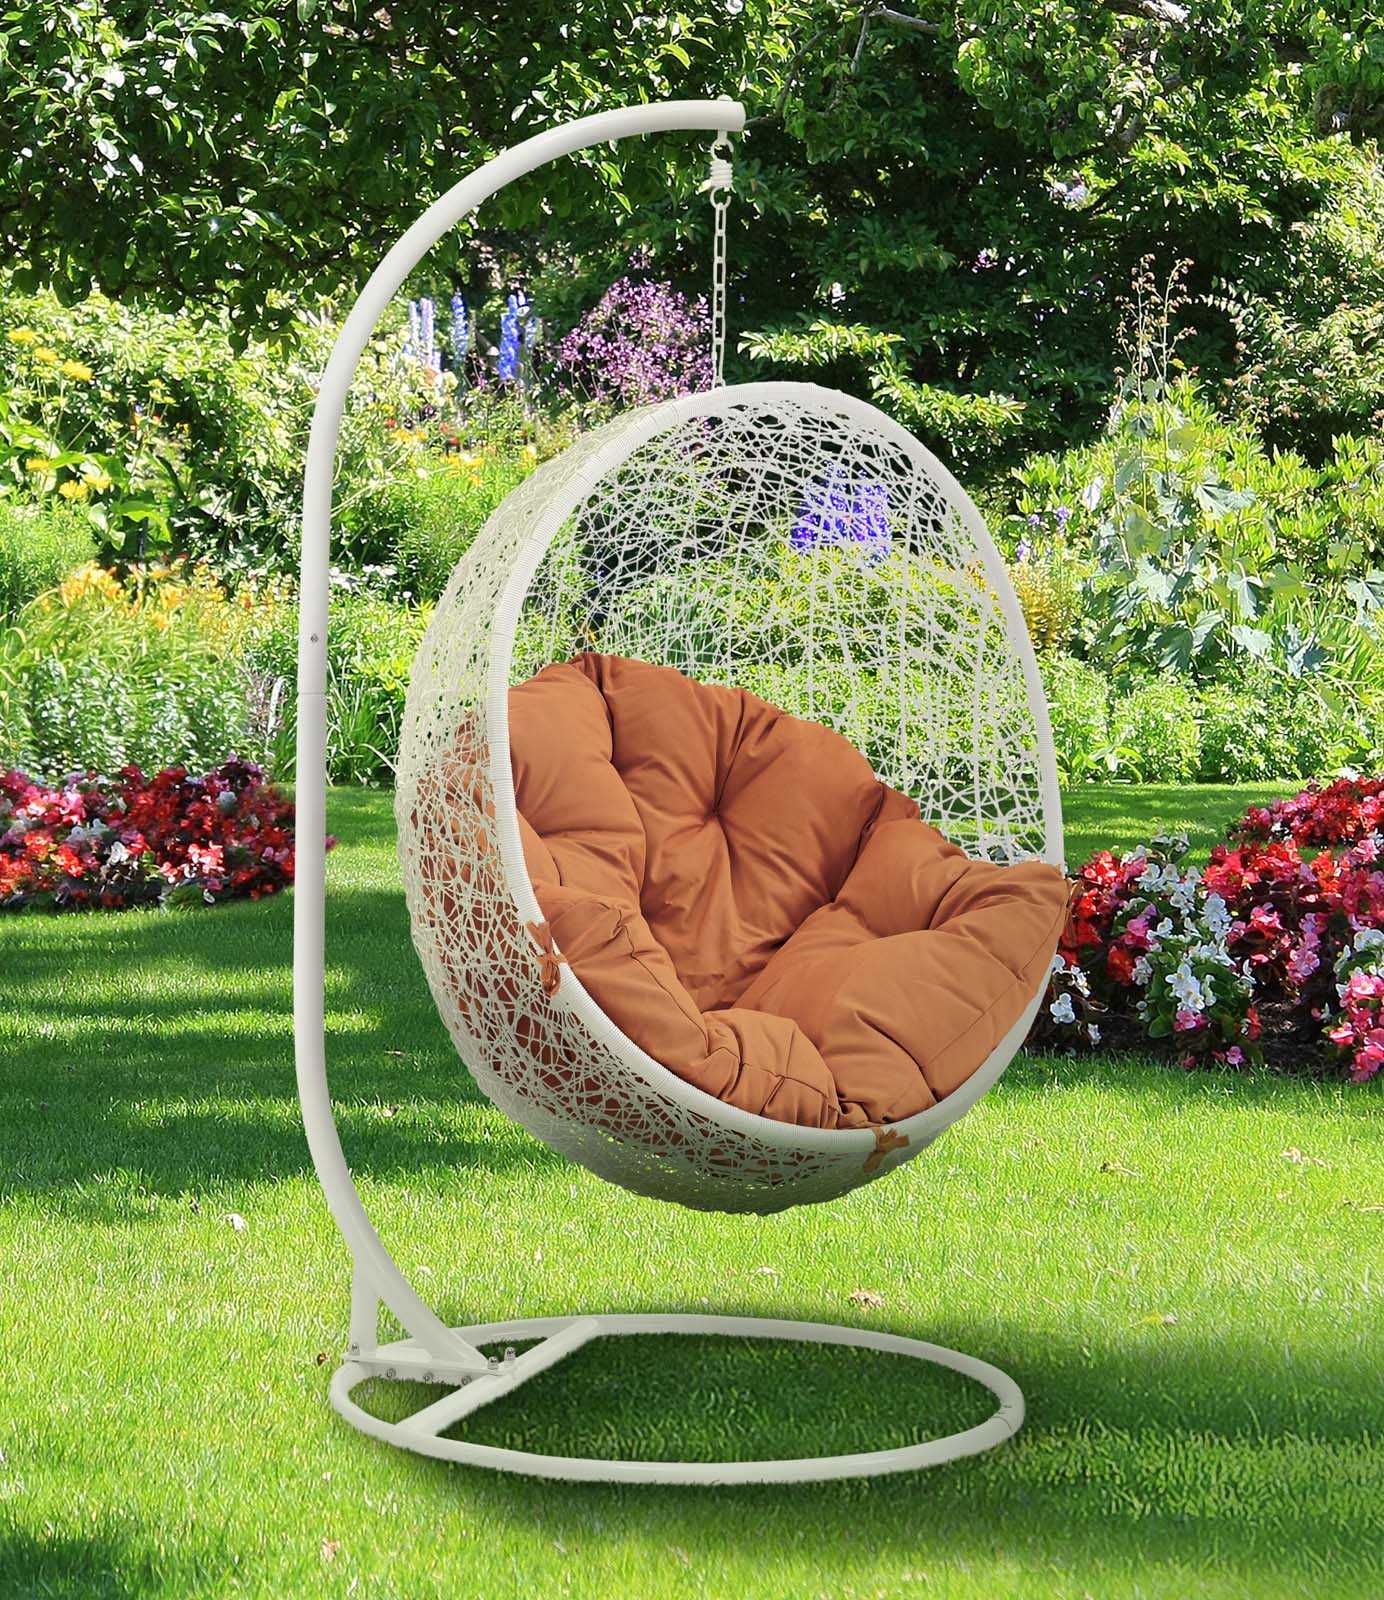 Hide Outdoor Patio Swing Chair With Stand White Orange by Modway